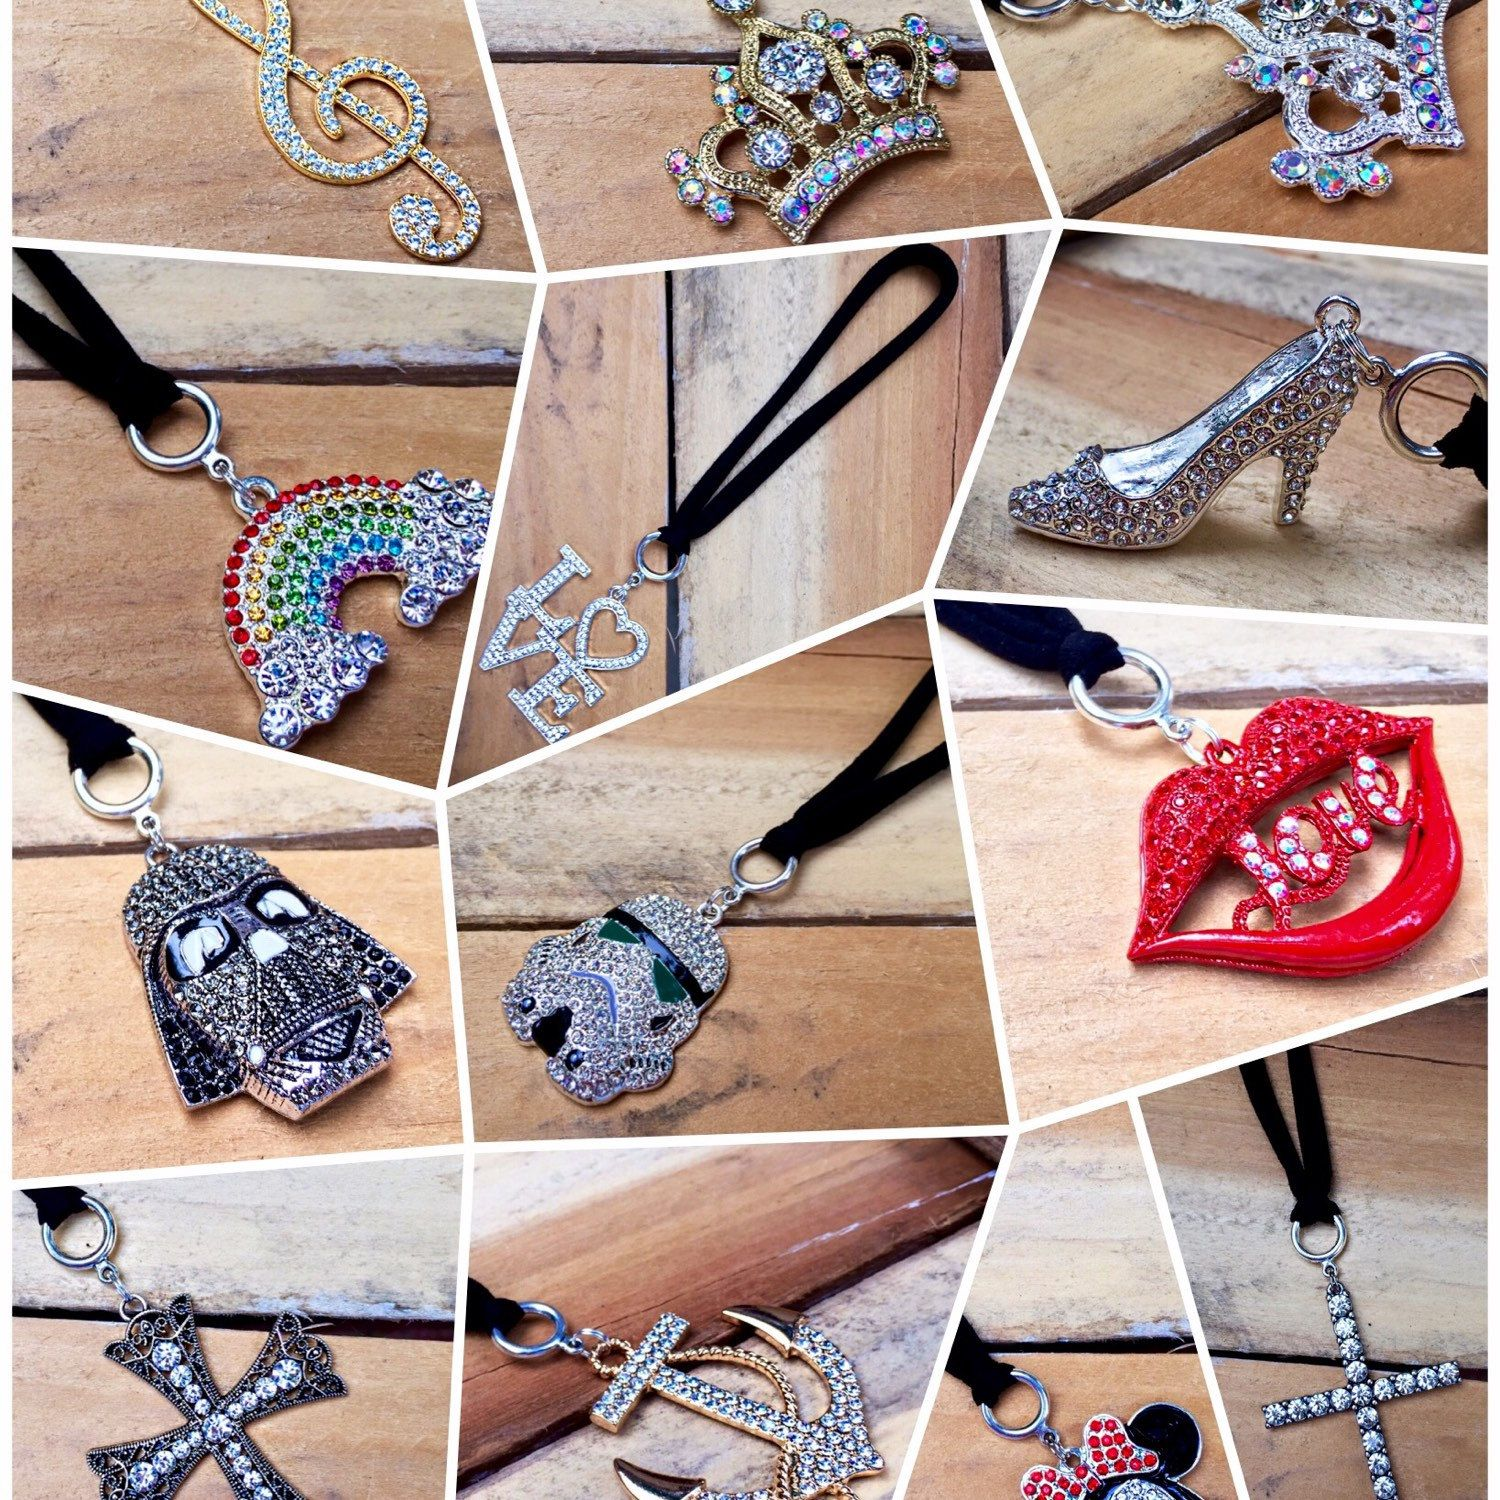 New listings for Car Bling All $12.99 Only 12 more days to use the 15% off coupon for July! Code: 1YEAR15